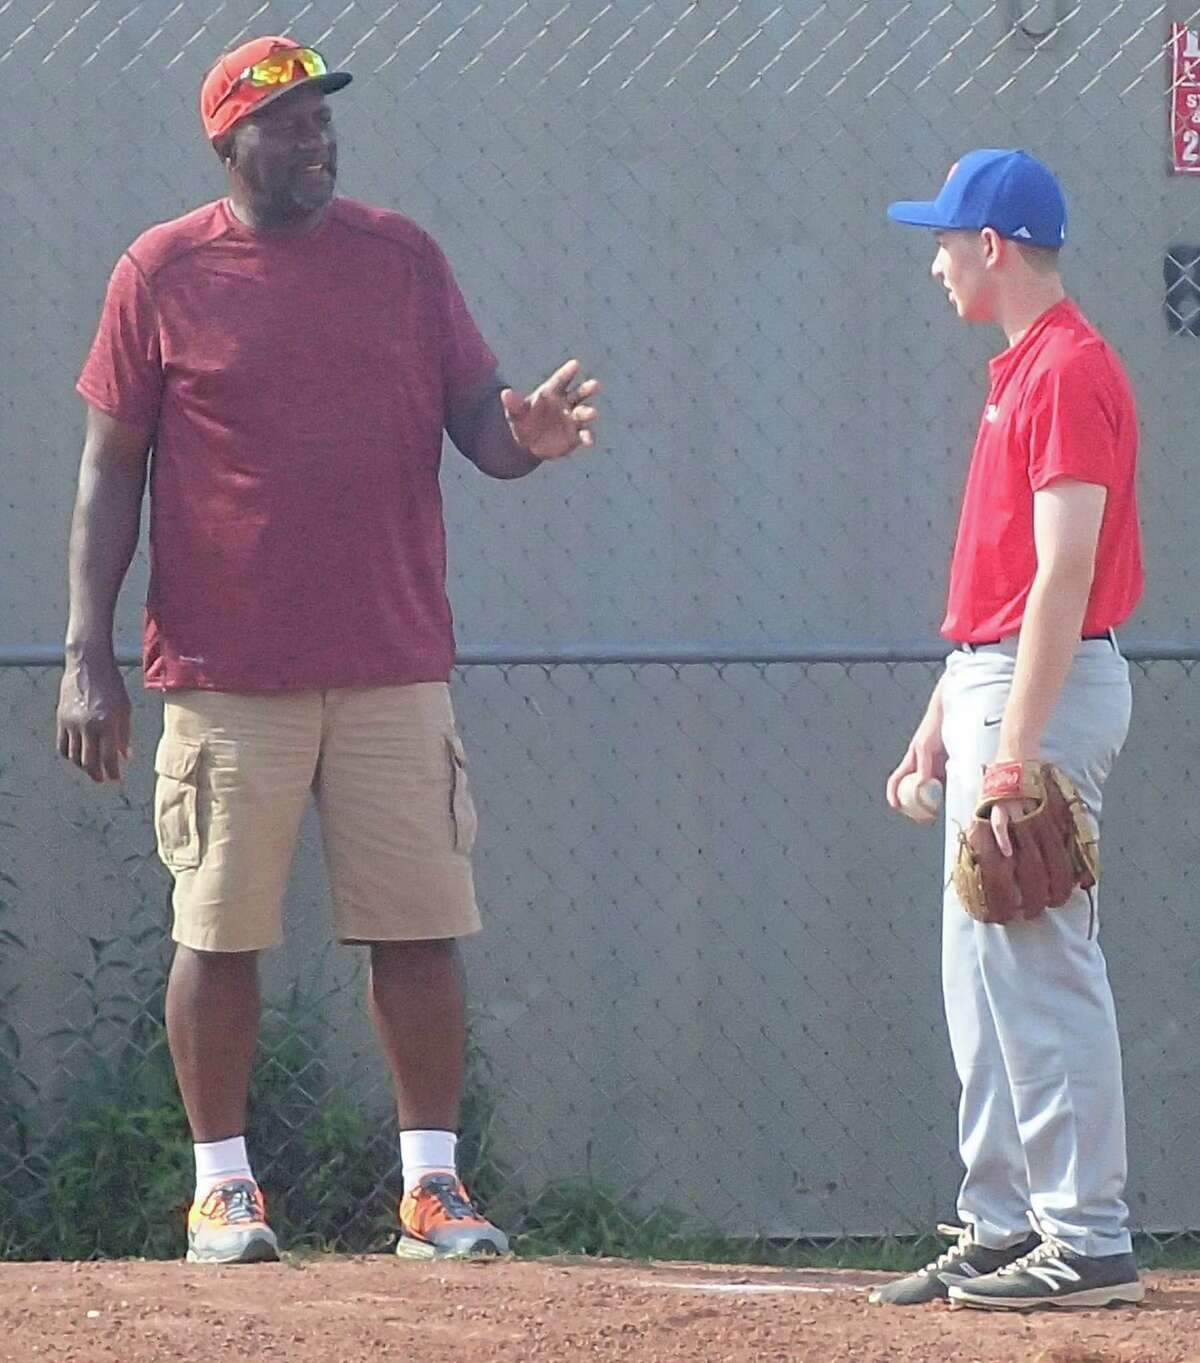 Danbury resident and former big-league relief pitcher Lee Smith, left, works with Derek Ross, a 16-year-old Immaculate High School student, during a baseball clinic hosted by the Danbury Westerners and the Danbury Youth Baseball Association at Rogers Park in Danbury June 29, 2016.